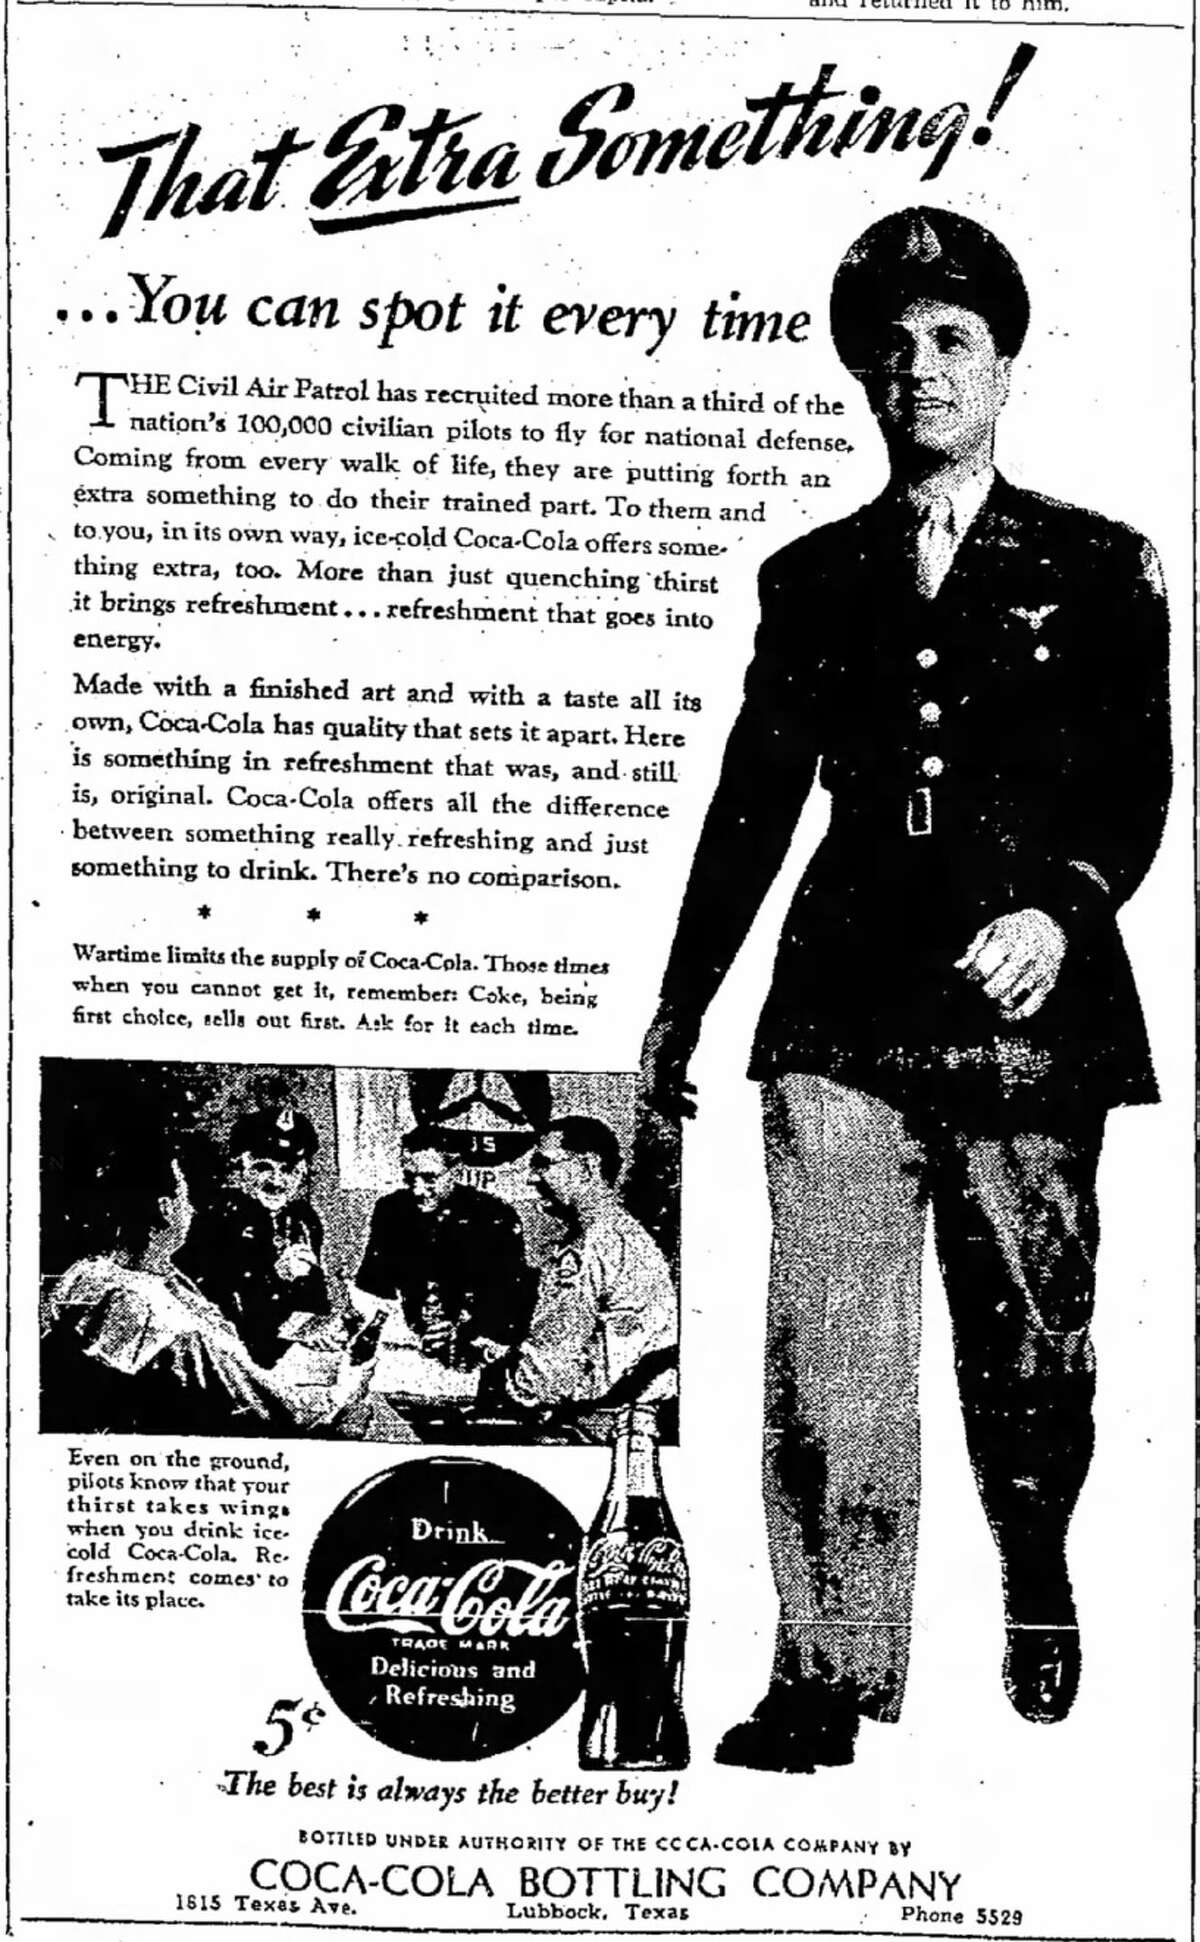 The Civil Air Patrol was an important component of America's defense strategy, particularly on the Home Front. That important point is made in a Coca-Cola-sponsored newspaper advertisement that originally appeared in the Aug. 8, 1943, edition of the Lubbock Avalanche-Journal.